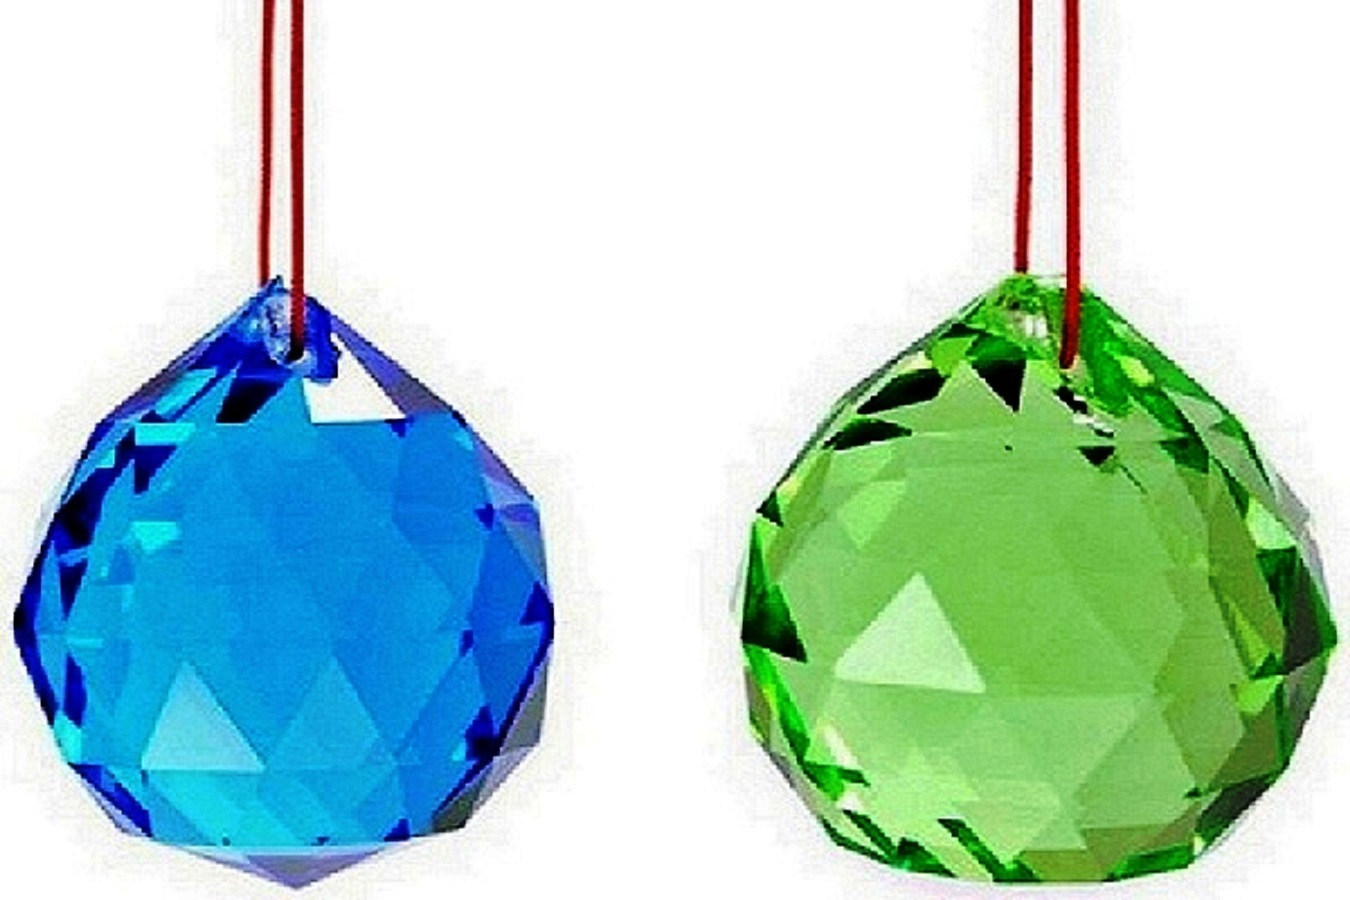 Numeroastro Feng Shui Crystal Balls (Green & Blue) (Pack Of 2) - 4 Cm